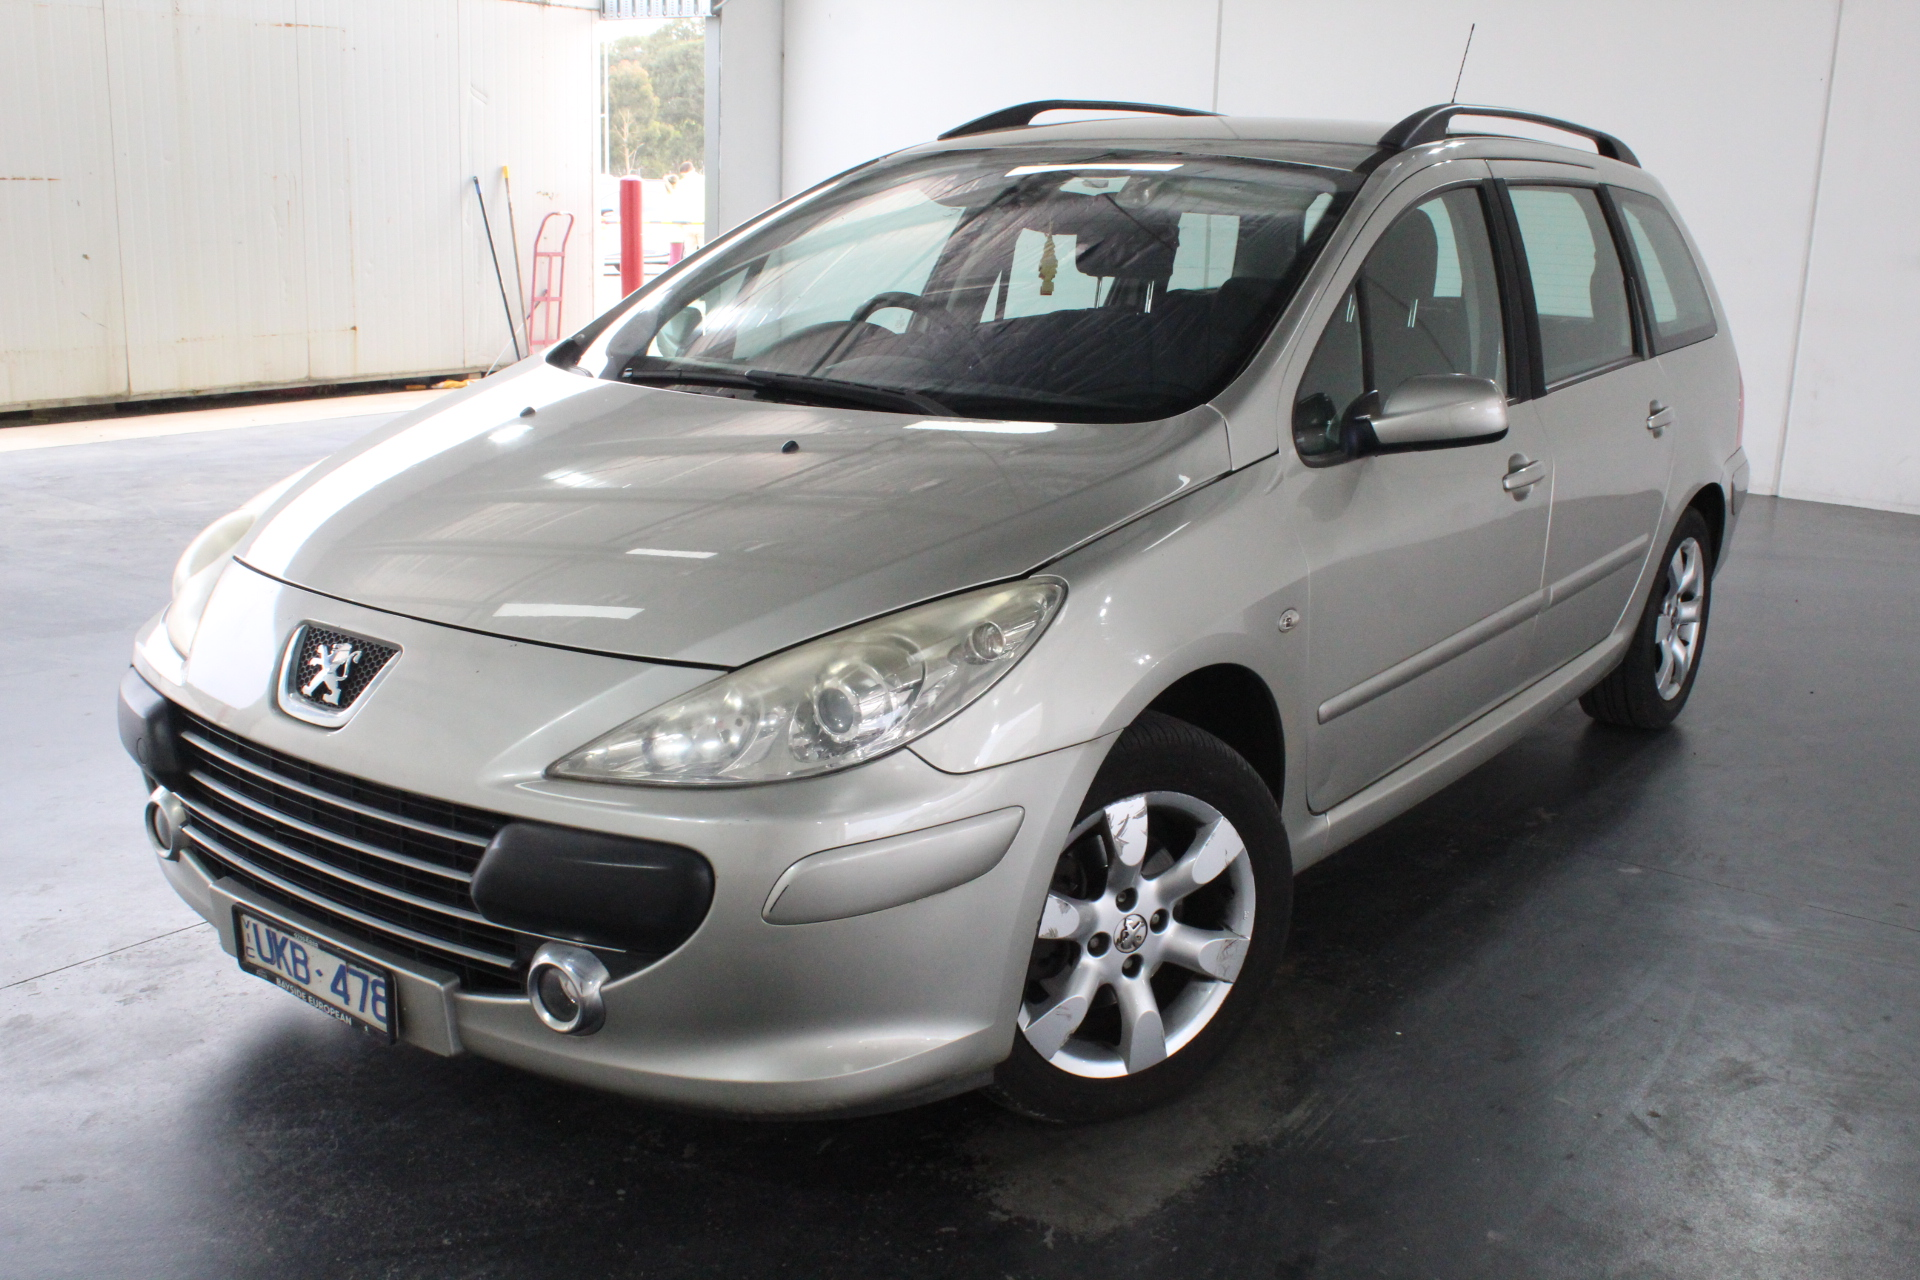 2006 Peugeot 307 XSE 2.0 Touring Automatic Wagon